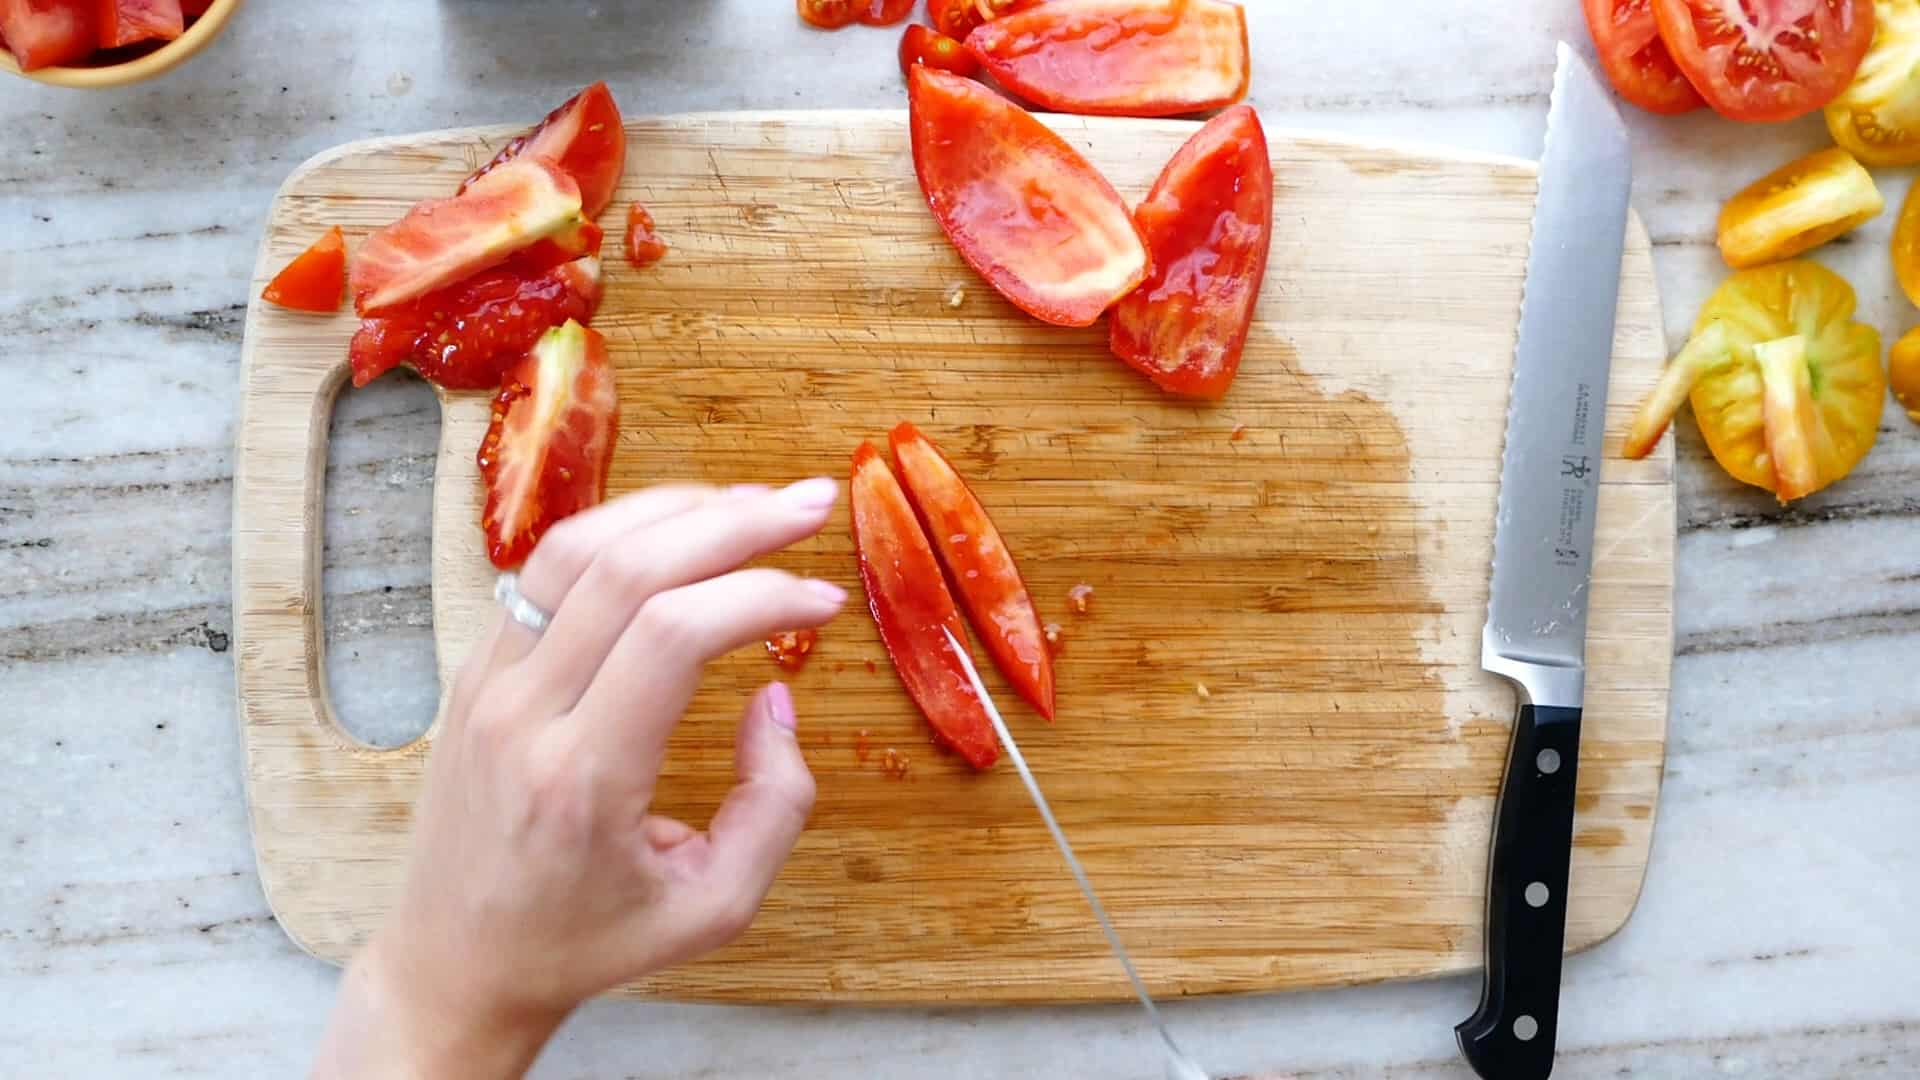 woman slicing a roma tomato into strips on a cutting board